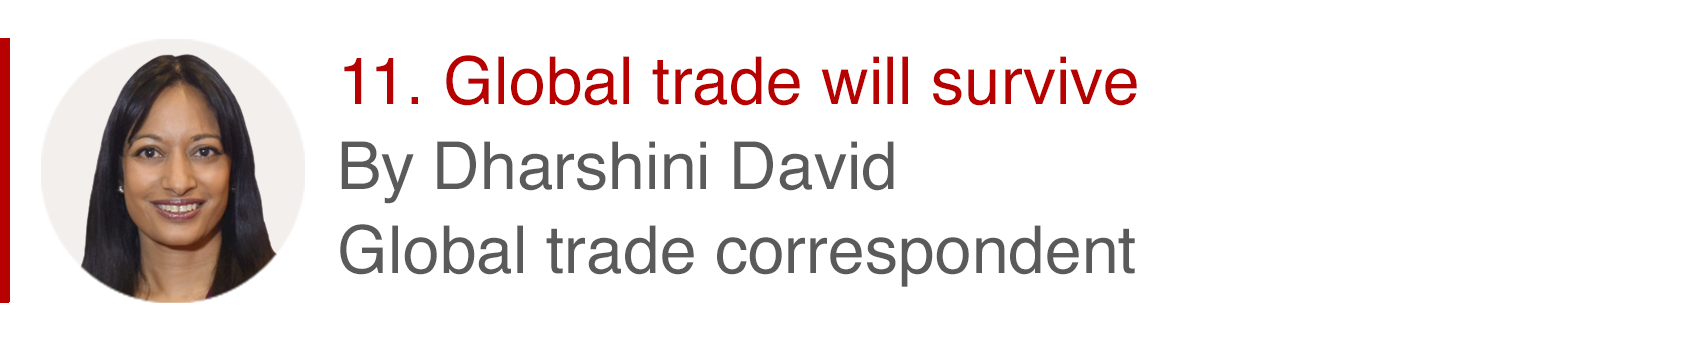 11. Global trade will survive. By Dharshini David, global trade correspondent